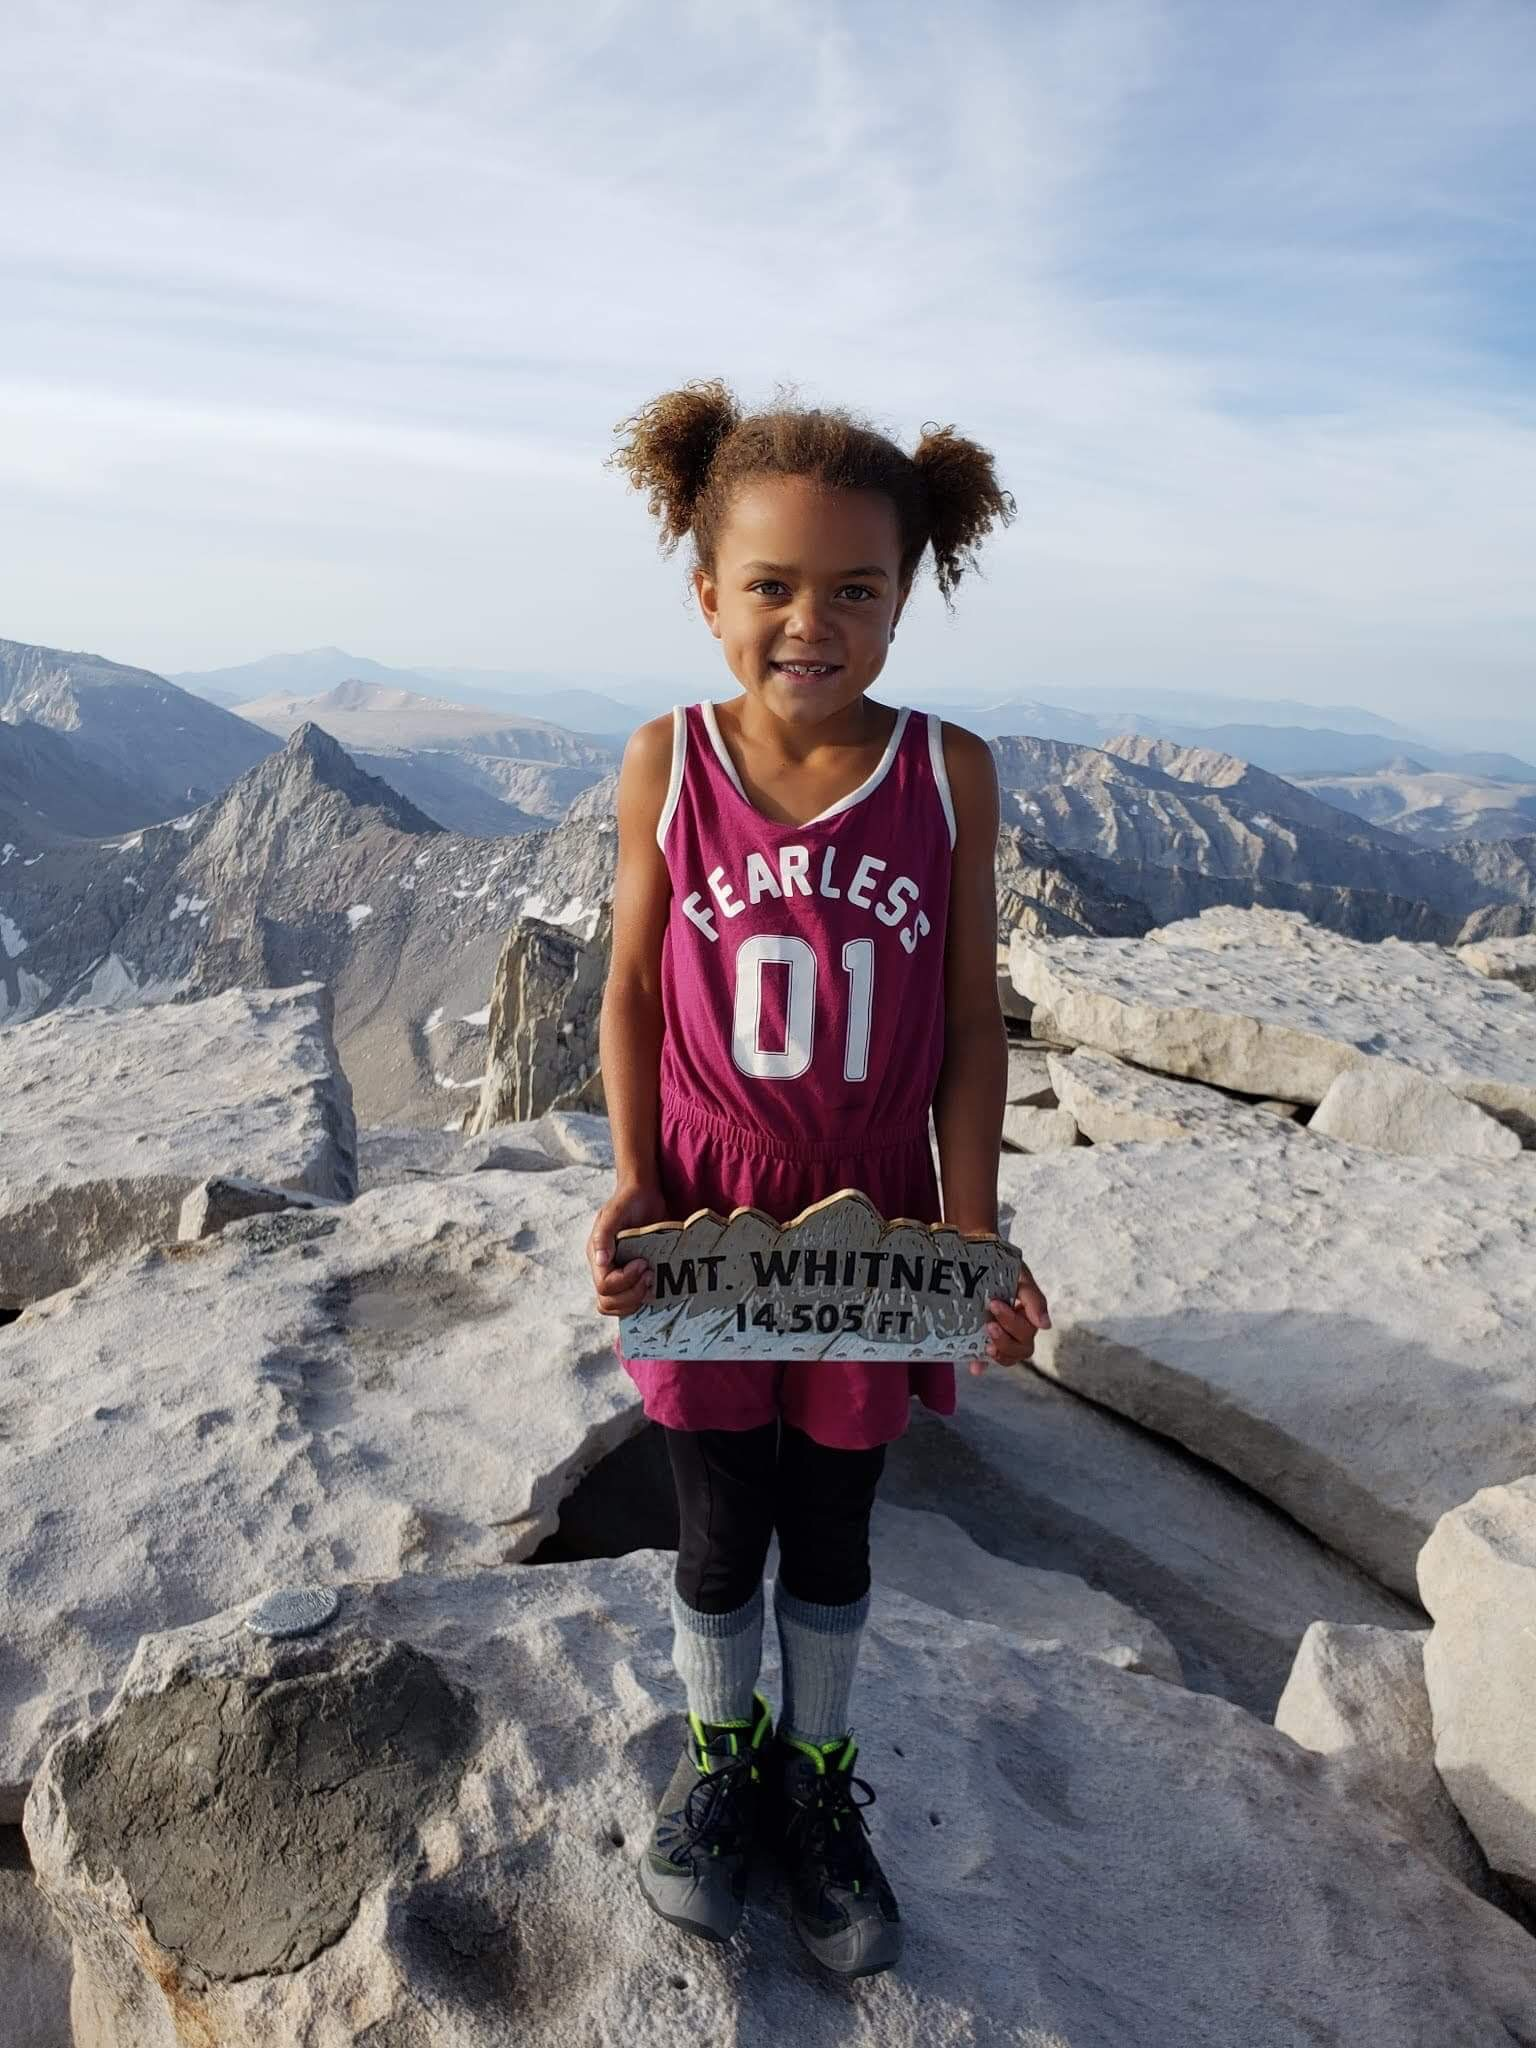 My 6 year old on top of Mt. Whitney - My daughter is 6 years old and she just made it to the summit of Mt. Whitney in the USA a few days ago (July 2018). Please note that the actual name of this mountain is Tumanguya, named by the Pi Ute indigenous people before that region of the Sierra Nevadas was colonized.My daughter's name is Eva Luna.I believe she may be the youngest girl to have done this on record in the last ten years. Research shows that a six year old boy did it in October 2016. So far, the number of children to have done it at the age of 6 and under are 3kids (at least on record).Eva Luna wanted to be one of the youngest girls on record and it seems like she is probably as well as the youngest African American person on record.You can go here to learn more about why this is significant within a sport in which we rarely see more African Americans doing 14k+ mountains-- or mountaineering and extreme hiking in general. The Mountaineers also addresses this here.Tumanguya is the tallest mountain in the contiguous USA at 14,505 feet. 22 miles, but the high elevation and thin air can make it grueling and feel like twice as long for many who have attempted the ascent. She persevered through mild symptoms of altitude sickness. She woke up at midnight to start the ascent with headlamp and with her daddy and nine year old brother. It took them nine hours, half in the dark.One of the photos below is of Eva Luna on my back while we hiked Yosemite when she was a baby. Learning about hiking all the time from our many adventures from Utah to Yosemite, and other places with great long trails. She thought it was normal that I had a 25lb baby on my back while hiking up mountains and other places for miles. My favorite was her on my back for ten hours while we hiked Bryce Canon in Utah.In one of the photos below,I was pregnant with Kiki (her younger sister) while Eva Luna was on my back (Yosemite).Eva Luna has seen me hiking while pregnant and has seen me hiking while havin